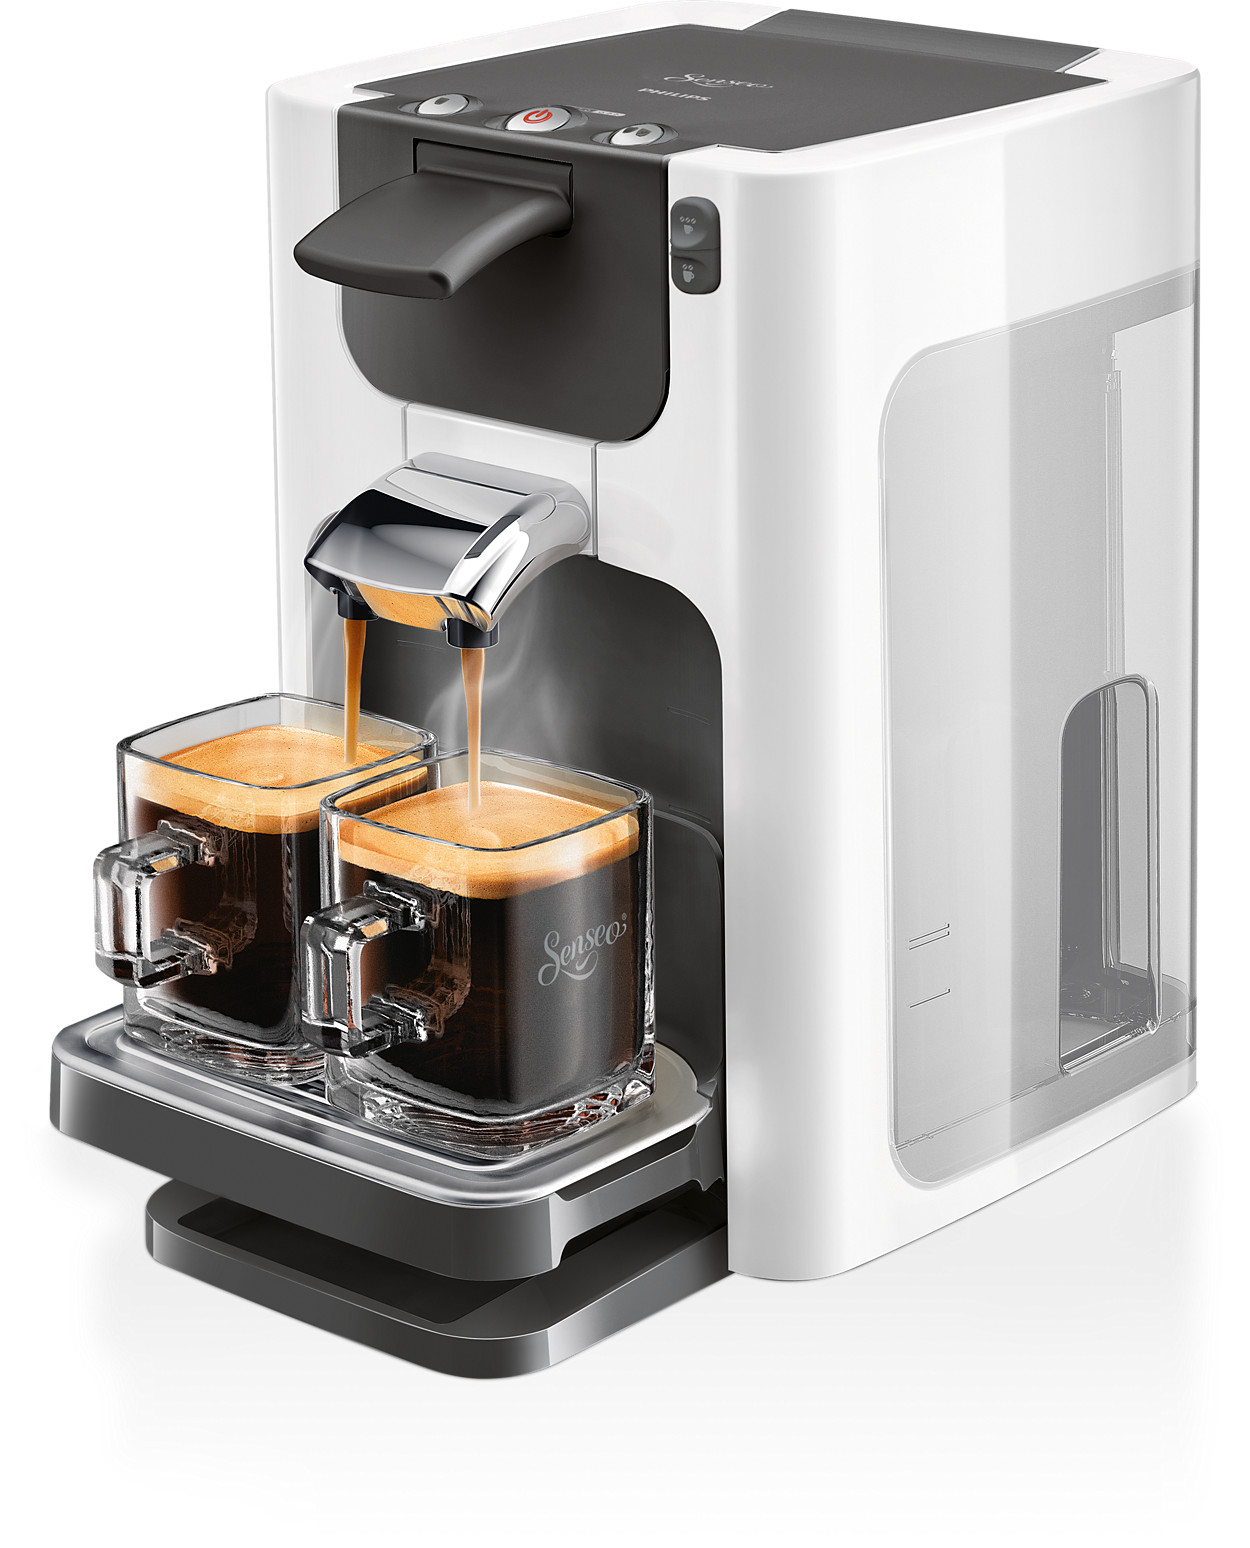 buy the senseo quadrante coffee pod machine hd7864 11. Black Bedroom Furniture Sets. Home Design Ideas